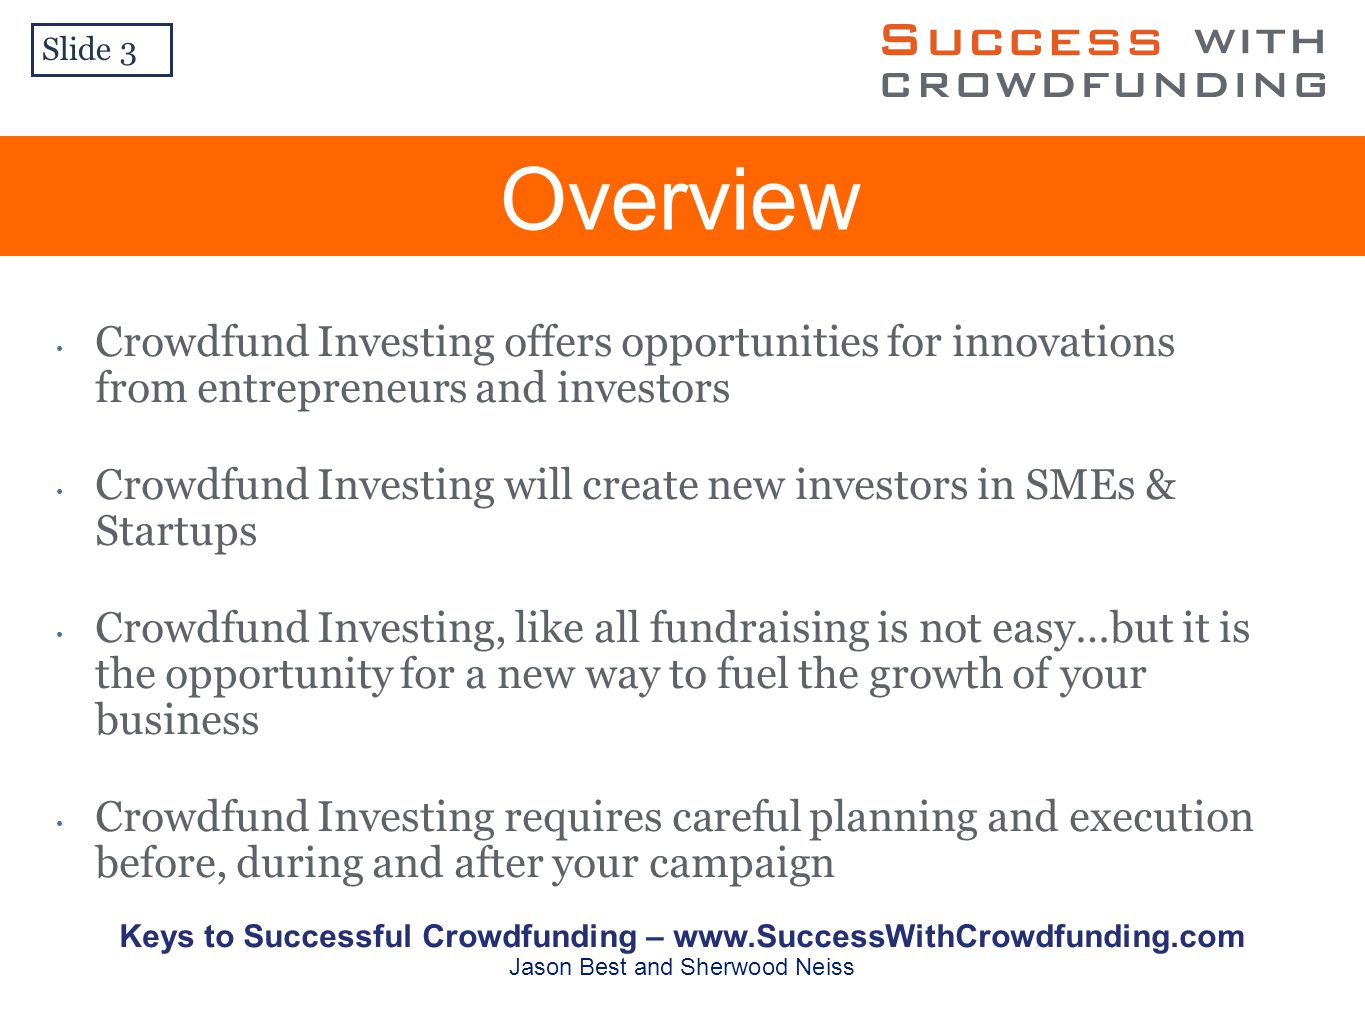 Overview Slide 3 Crowdfund Investing offers opportunities for innovations from entrepreneurs and investors Crowdfund Investing will create new investors in SMEs & Startups Crowdfund Investing, like all fundraising is not easy…but it is the opportunity for a new way to fuel the growth of your business Crowdfund Investing requires careful planning and execution before, during and after your campaign Keys to Successful Crowdfunding –   Jason Best and Sherwood Neiss